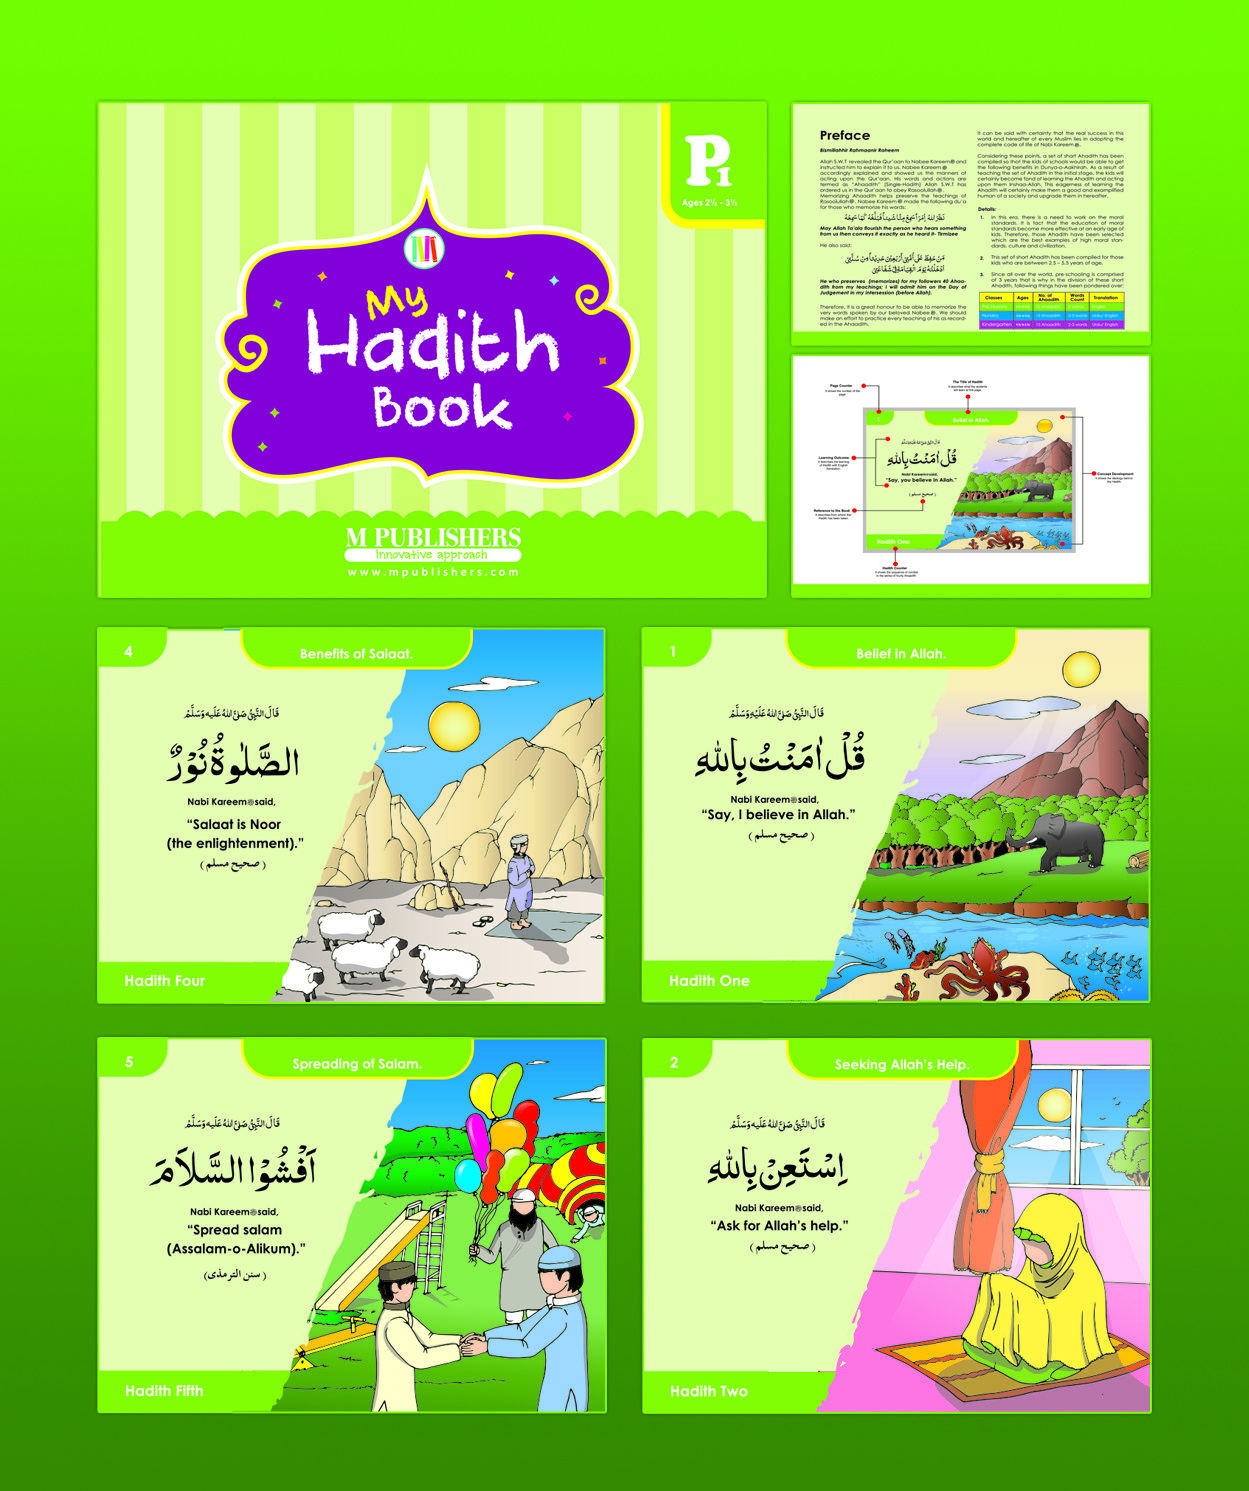 Lessons In Islam My Hadith Book P1 Ages 2 5y To 3 5y